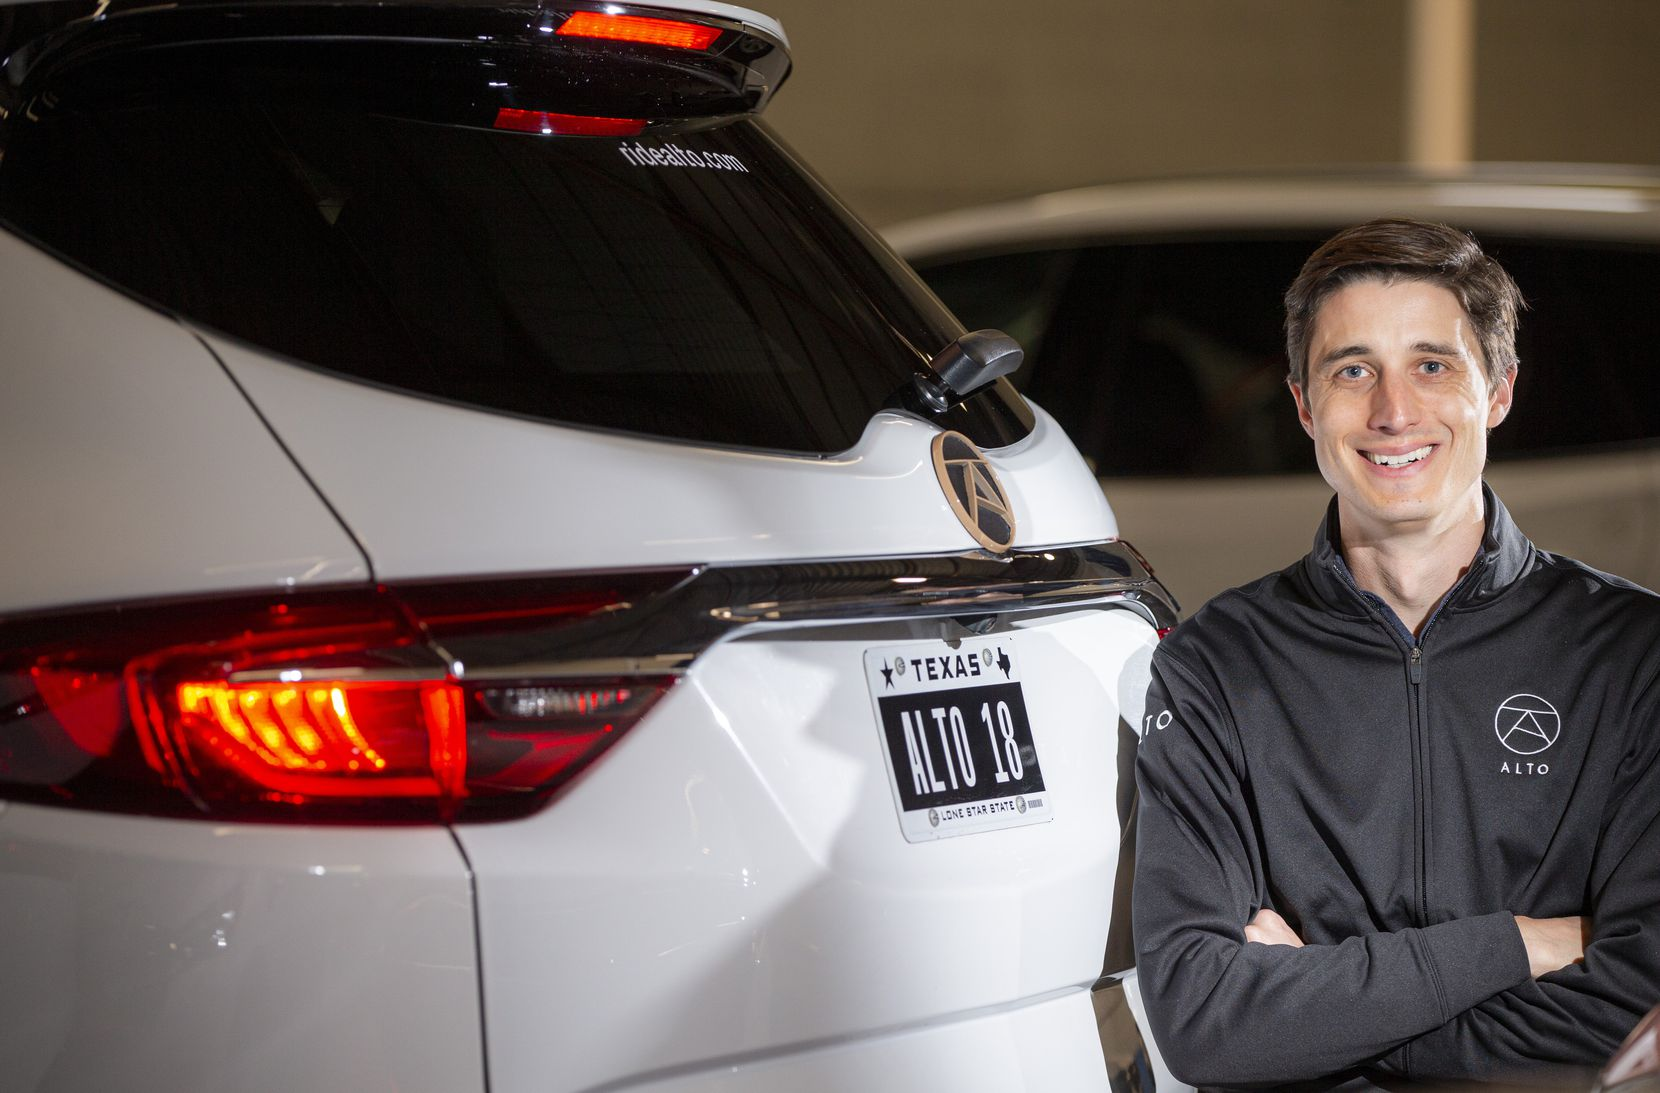 Alto's founder and CEO Will Coleman is a Dallas native and former consultant. He began the company with the backing of Road Ventures, a European venture firm focused on transportation. (Brandon Wade/Special Contributor)